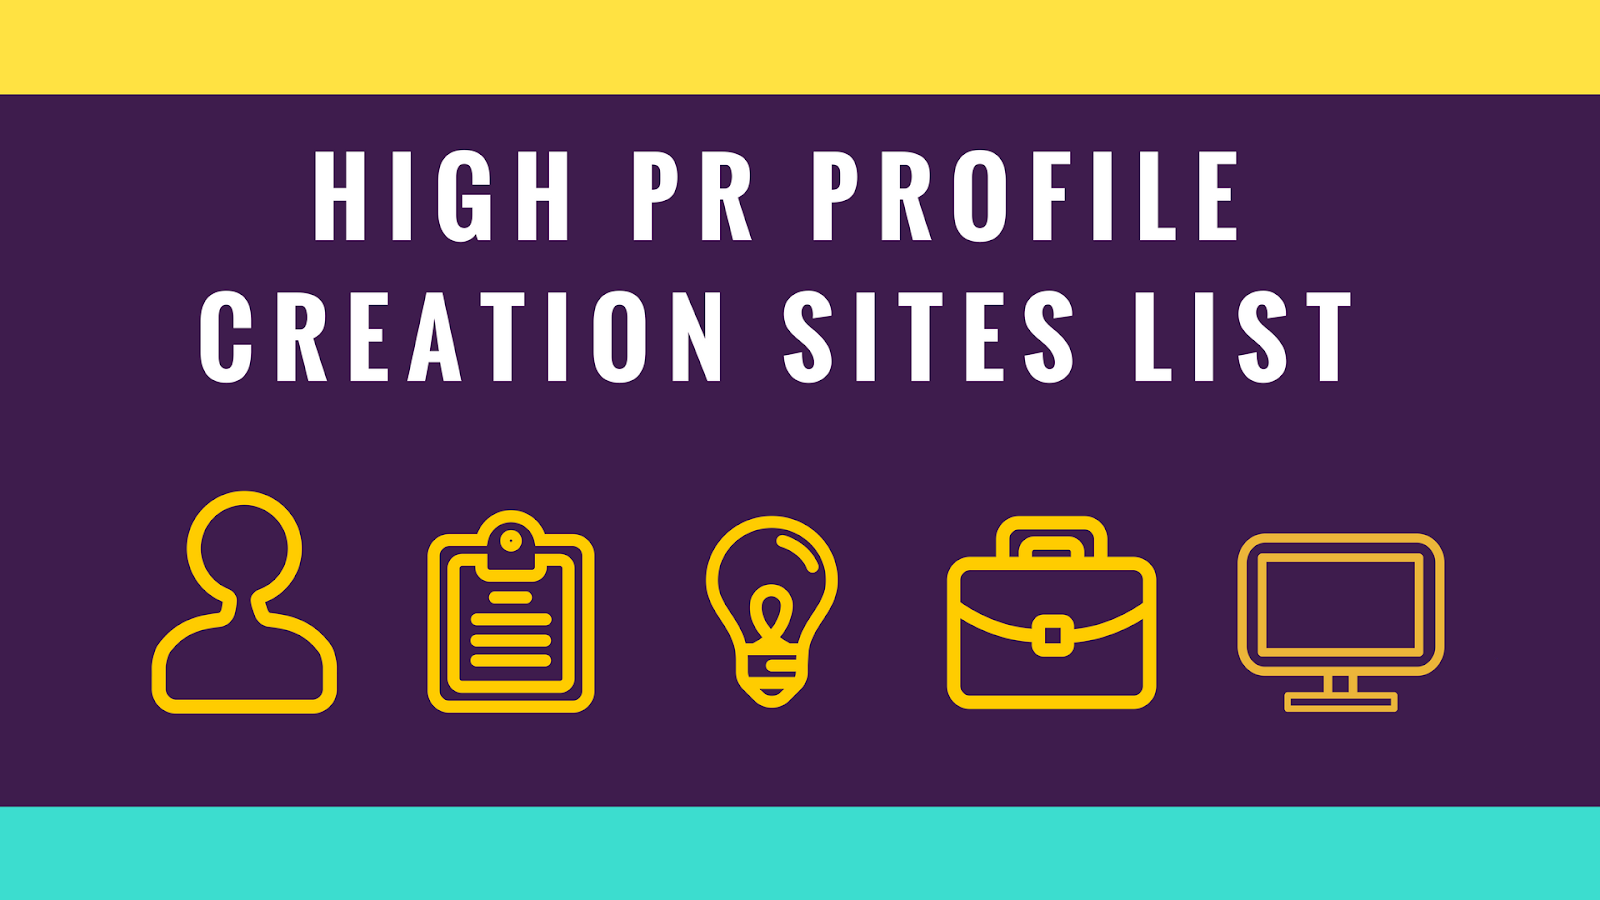 Profile Creation Sites List Do-follow Backlinks